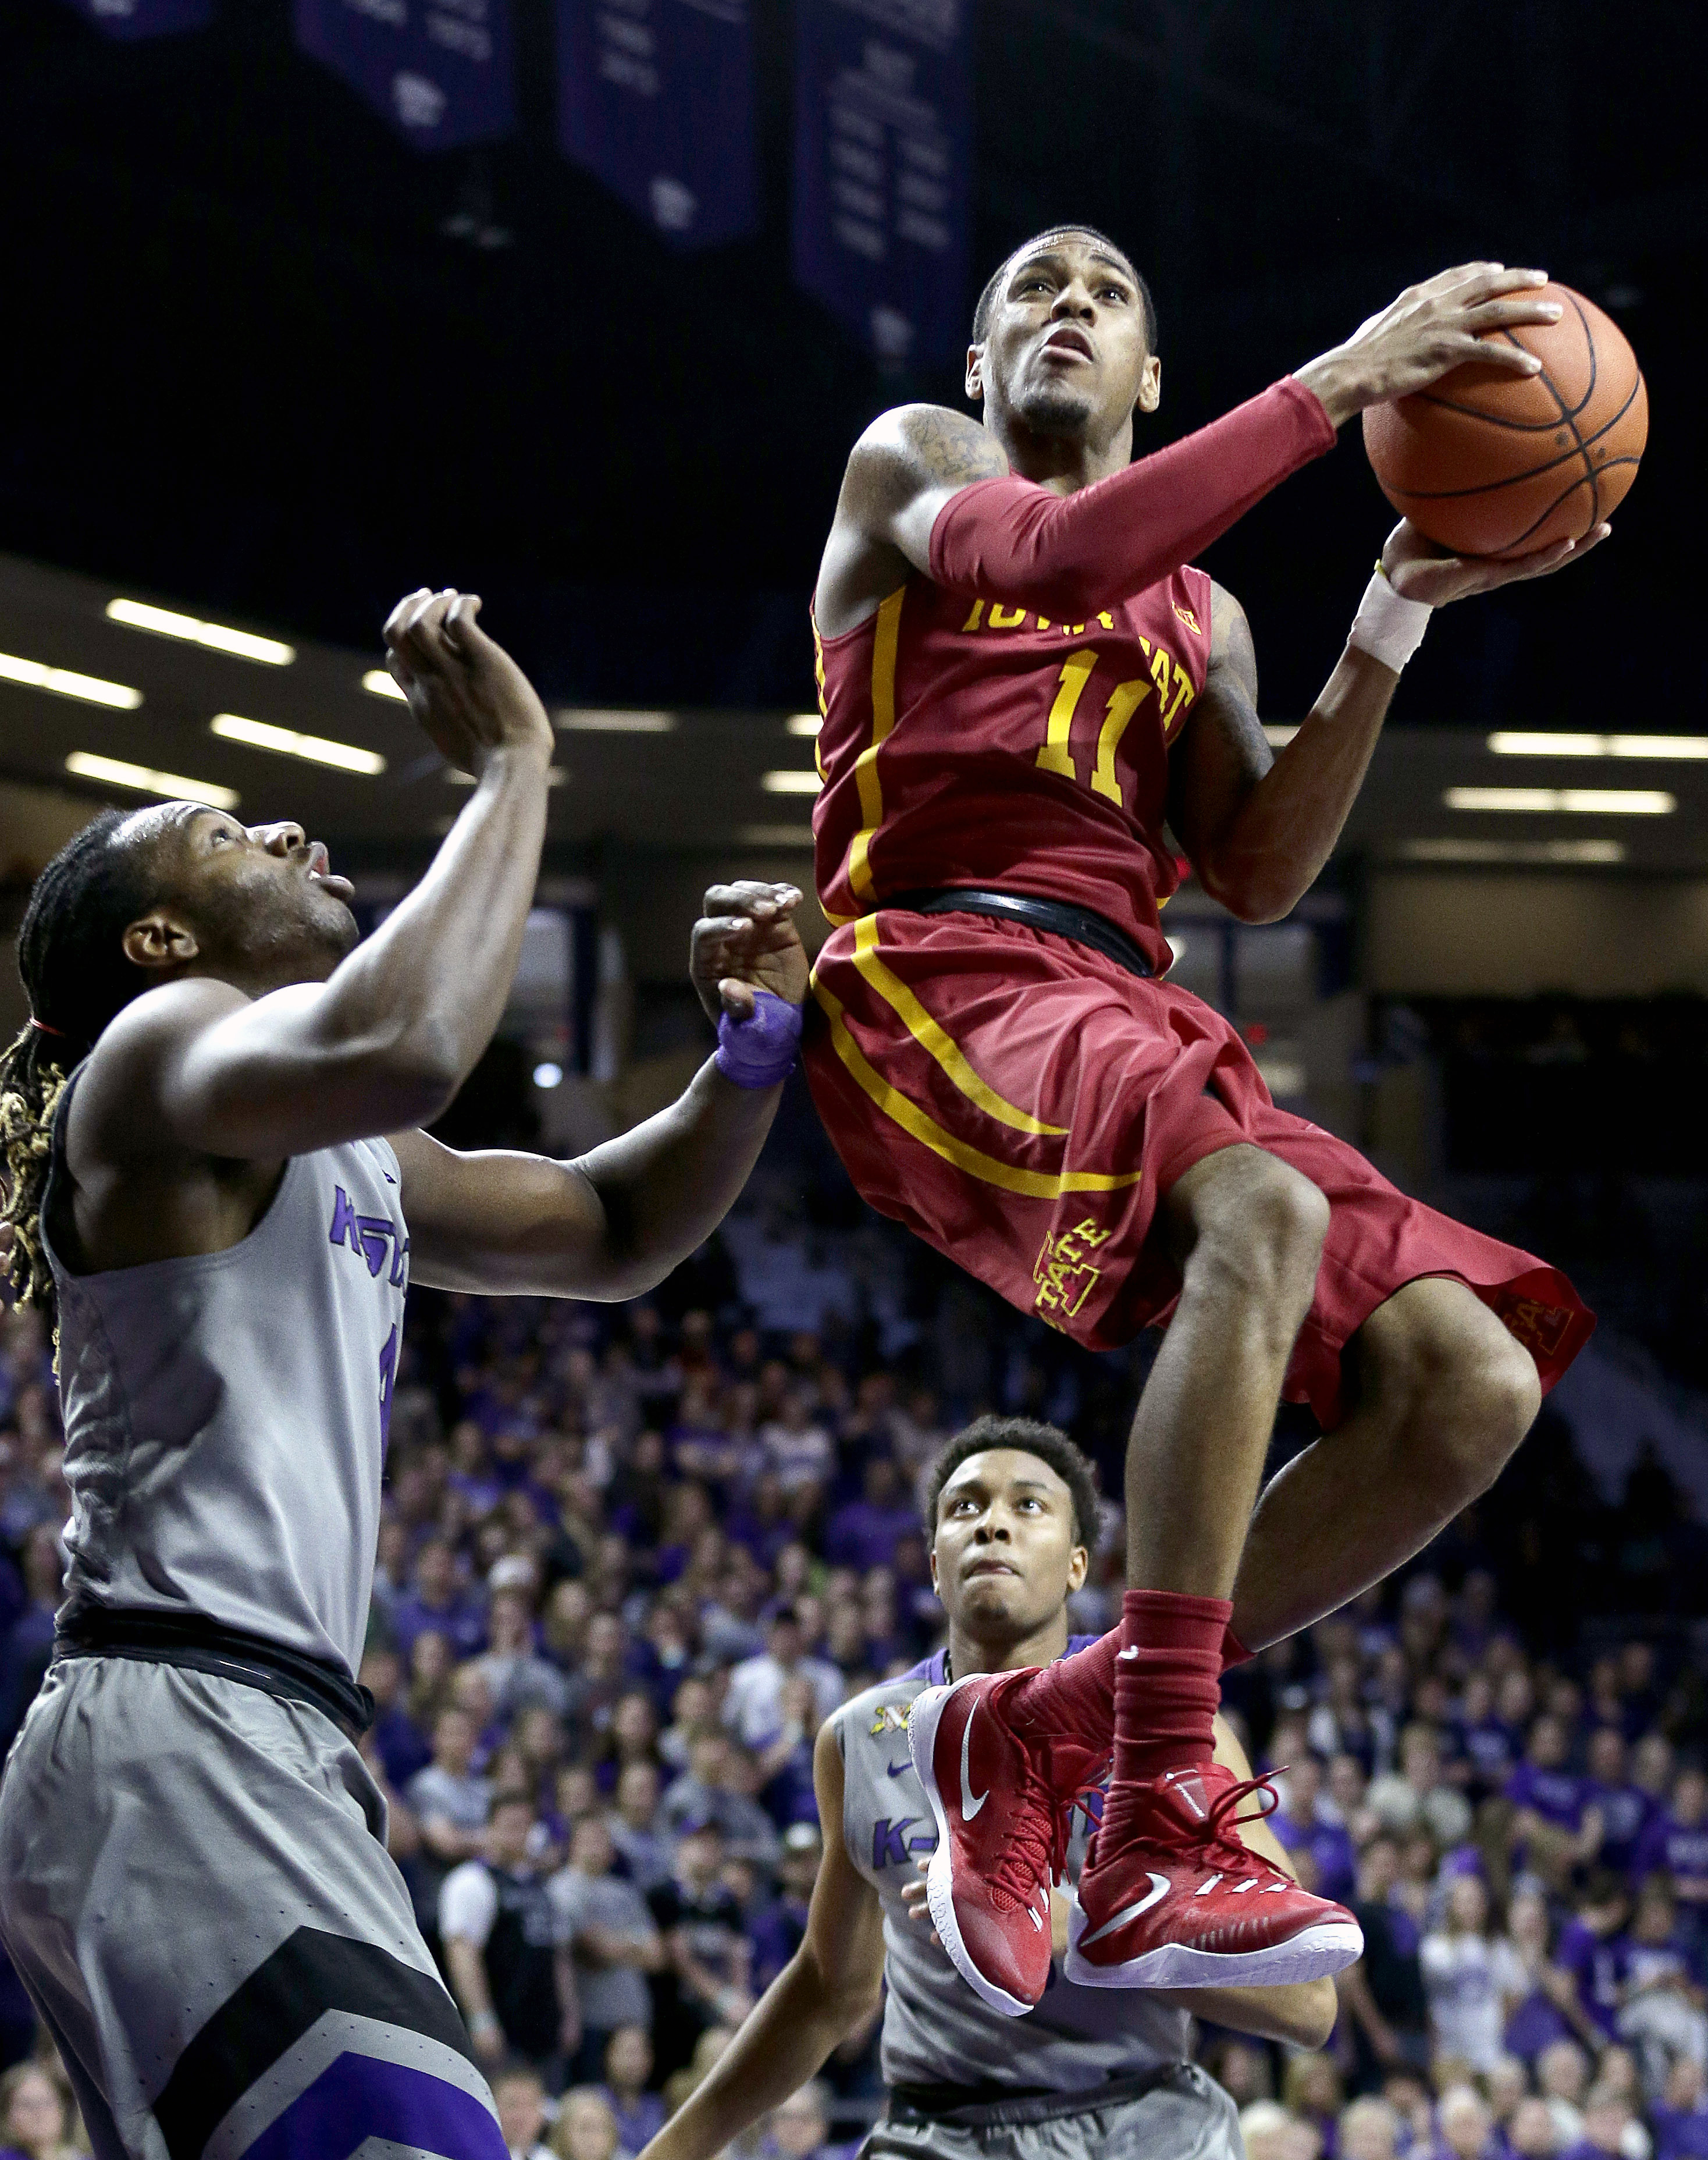 Iowa State's Monte Morris (11) gets by Kansas State's D.J. Johnson, left, to shoot during the first half of an NCAA college basketball game Saturday, Jan. 16, 2016, in Manhattan, Kan. (AP Photo/Charlie Riedel)